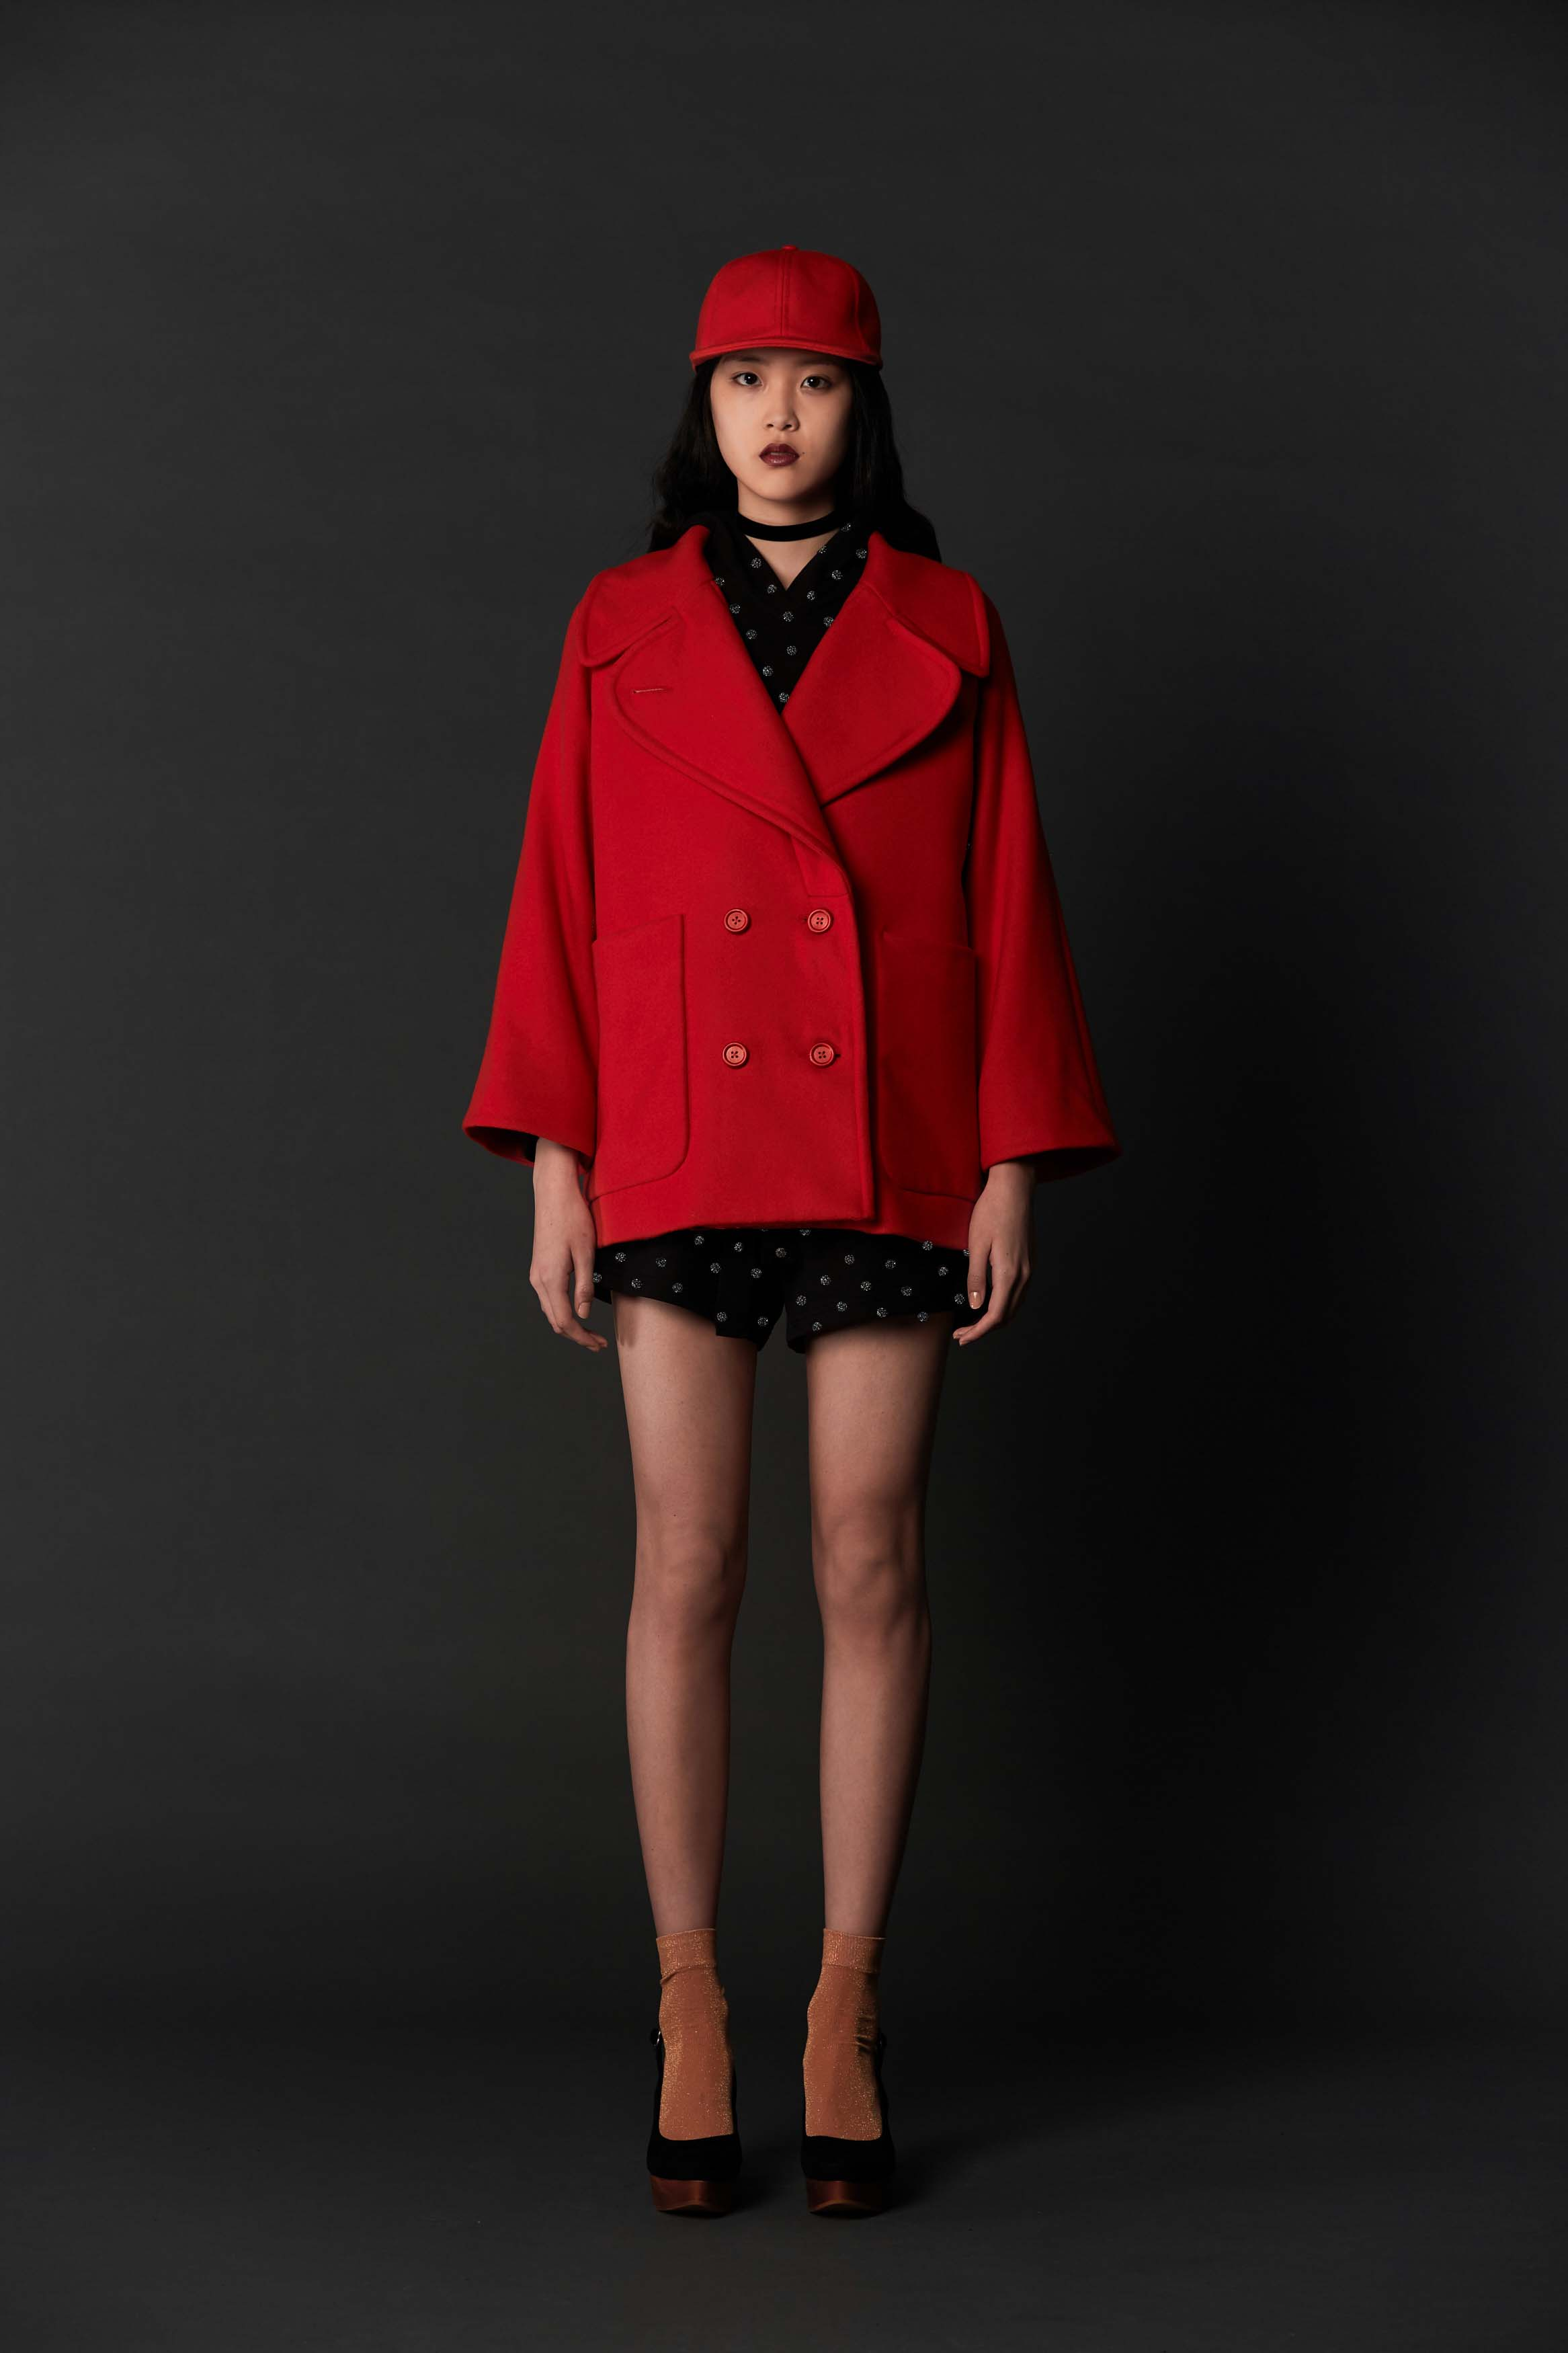 RUBY Alpine Peacoat, Potion Hoodie, Potion Short, Alpine Baseball Cap & Halo Heel